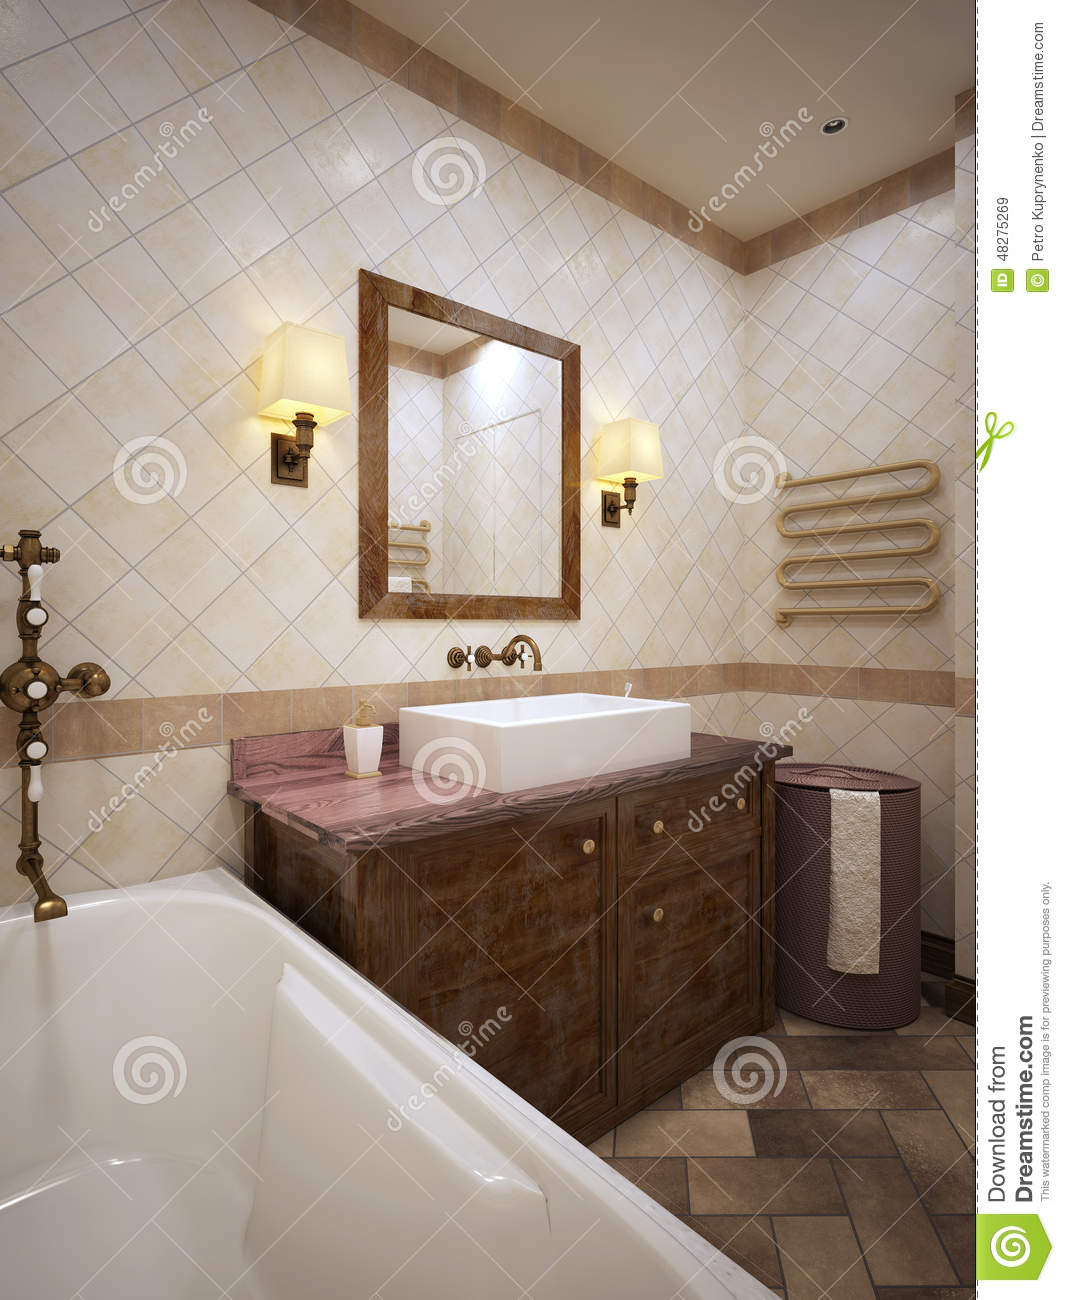 Bathroom in provence style stock illustration image for Provence bathroom design